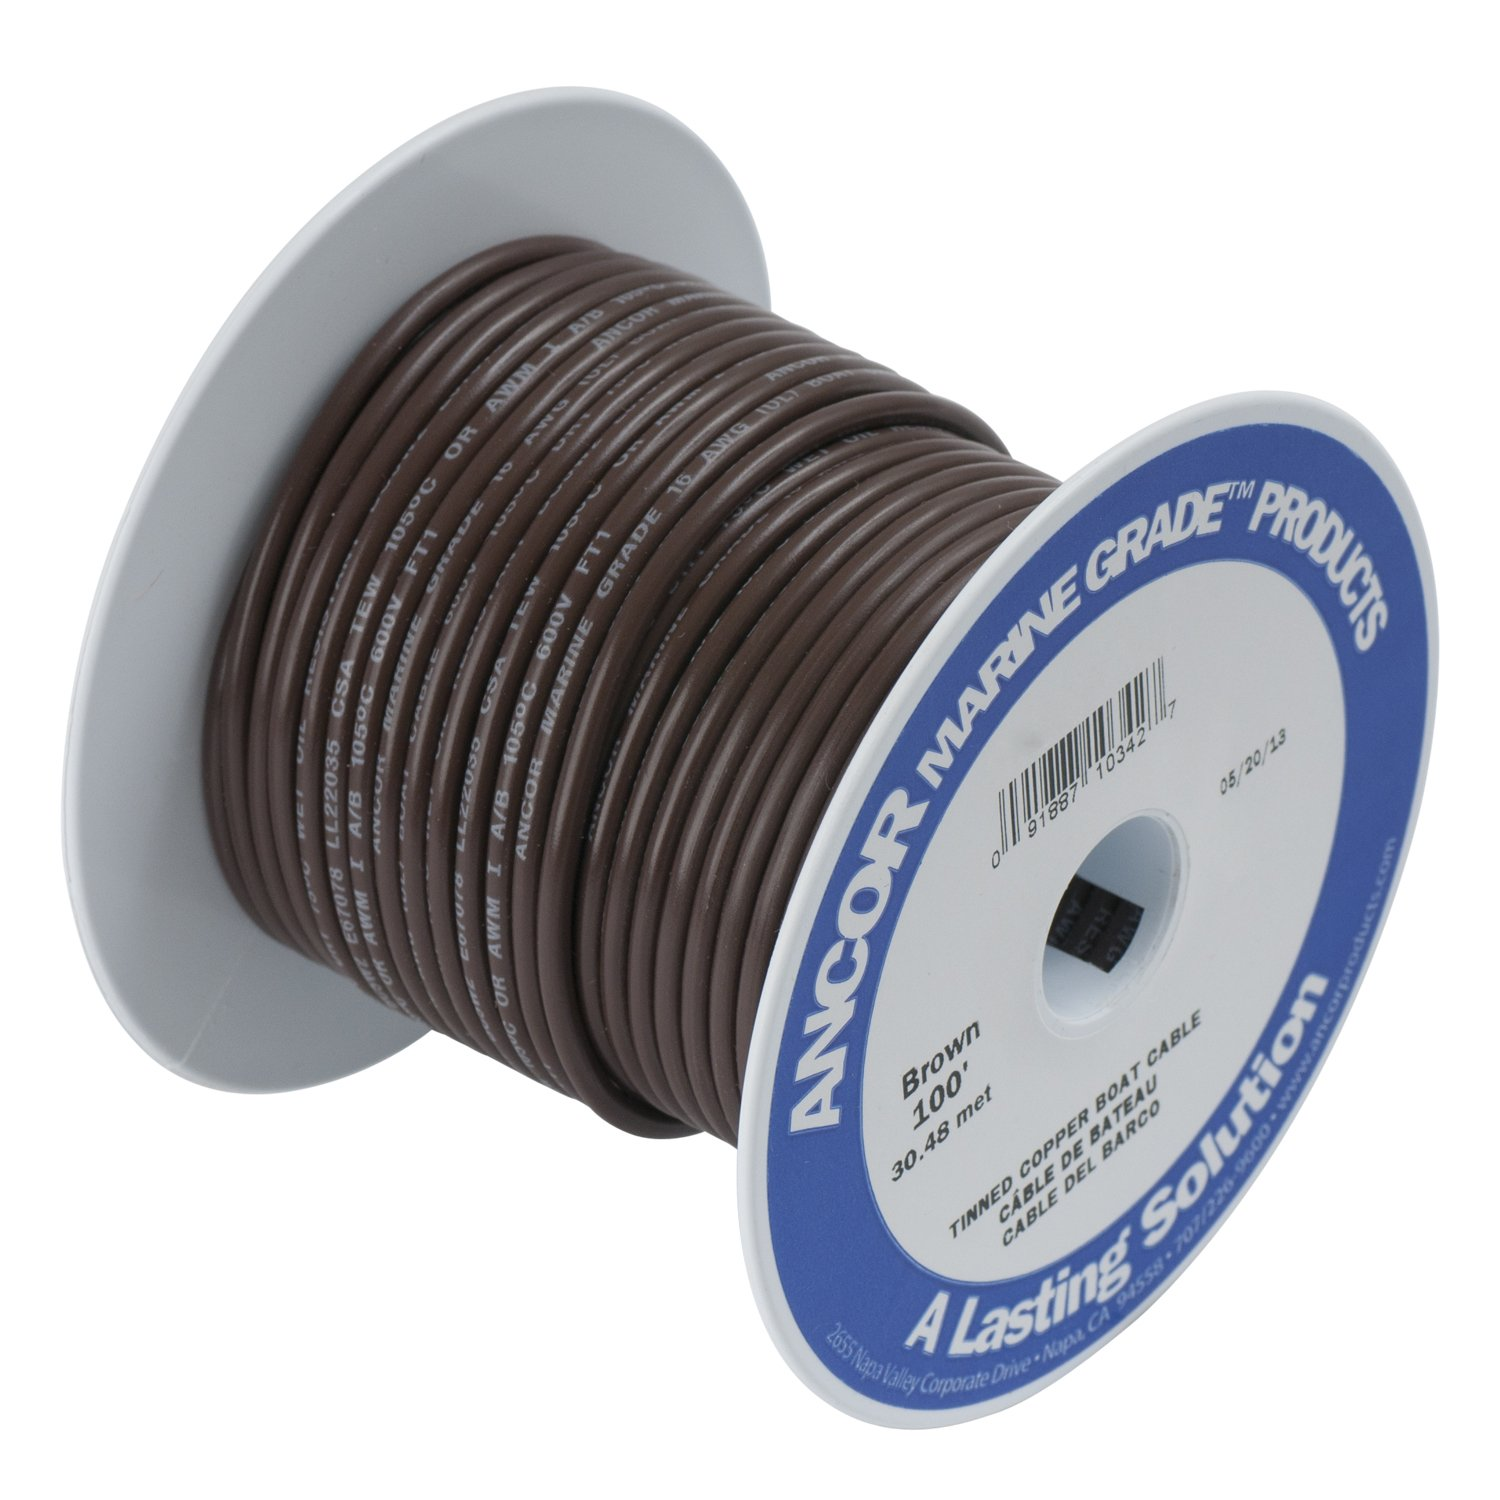 Ancor 180203 Marine Grade Electrical Primary Tinned Copper Boat Wiring (18-Gauge, Brown, 35-Feet)